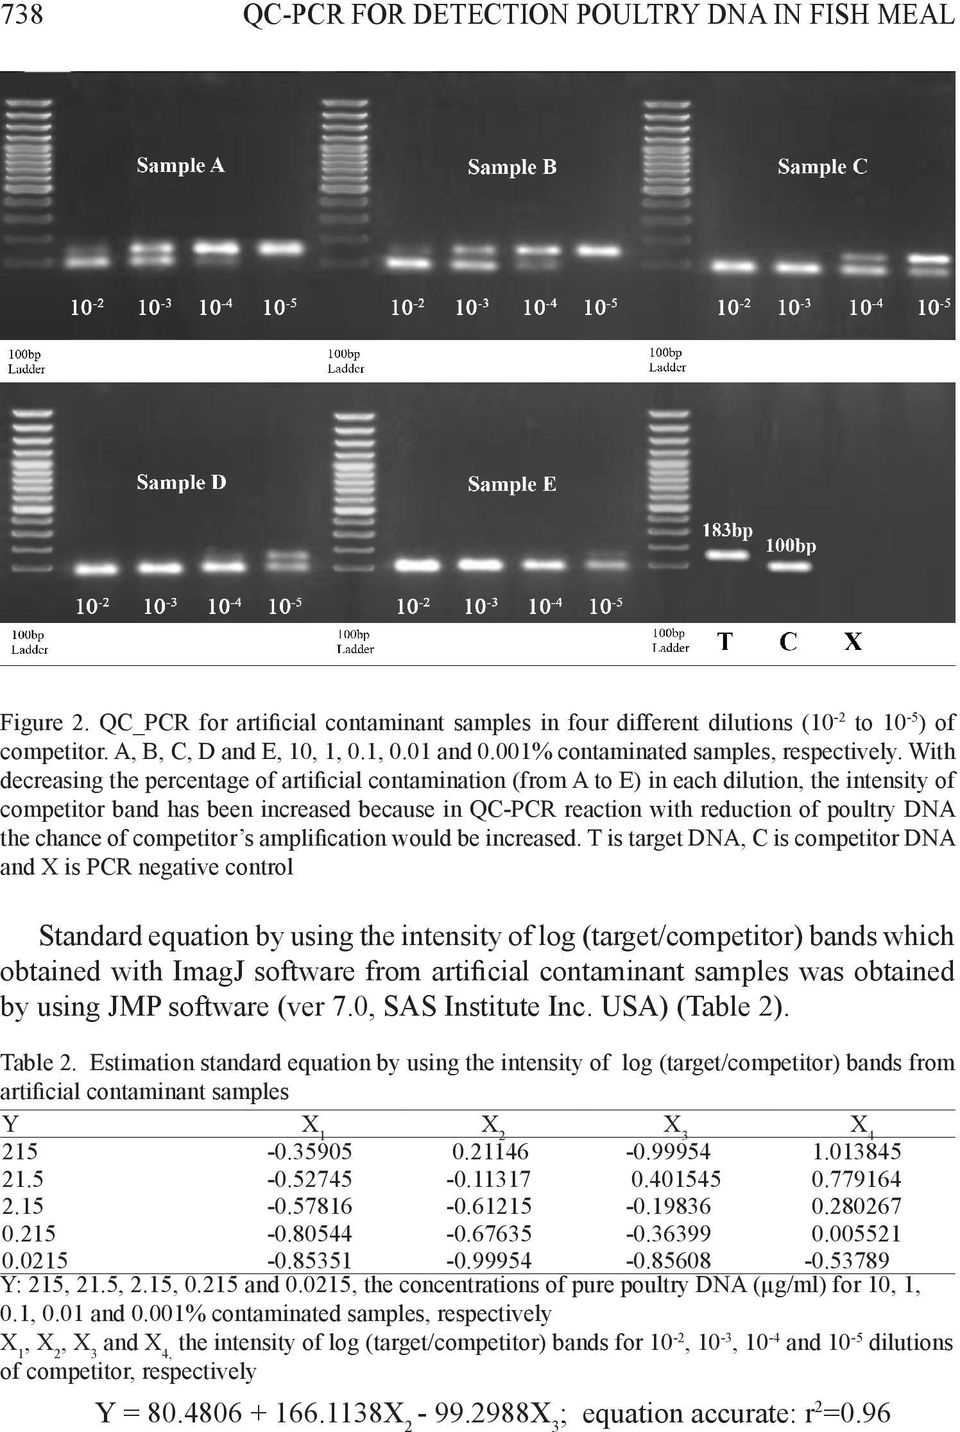 With decreasing the percentage of artificial contamination (from A to E) in each dilution, the intensity of competitor band has been increased because in QC-PCR reaction with reduction of poultry DNA